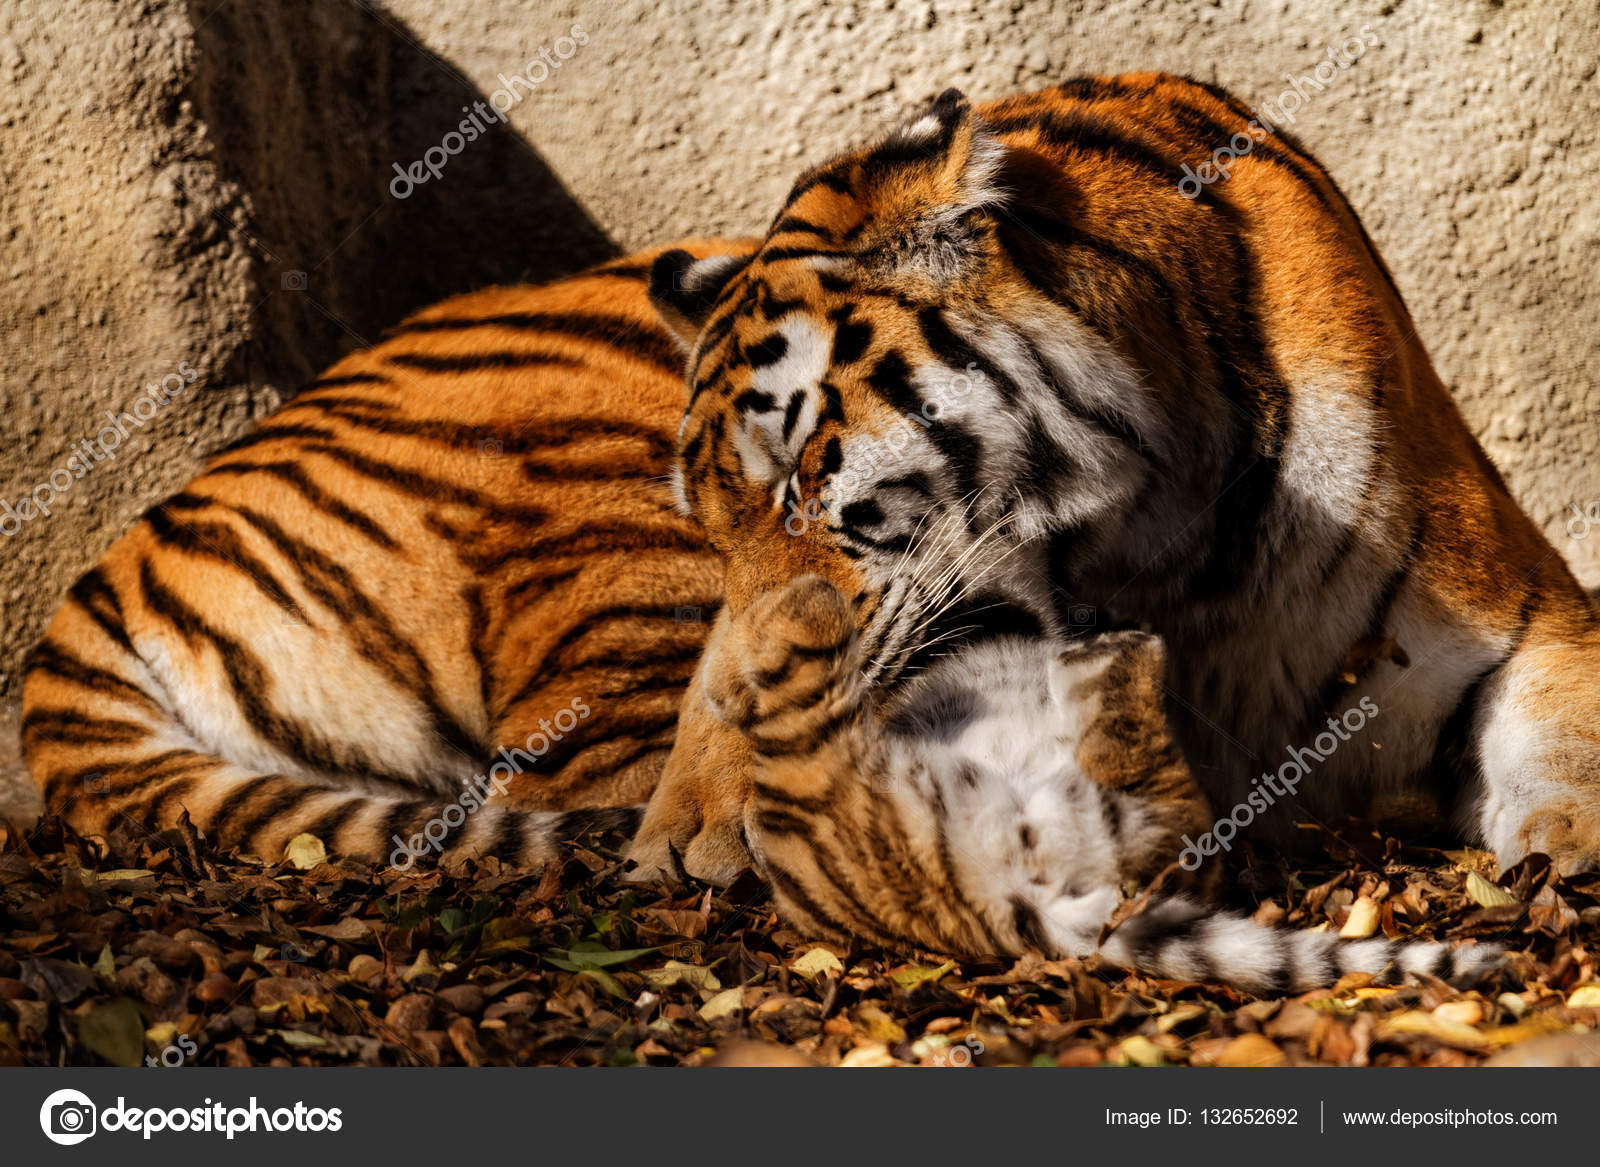 the tiger mum in